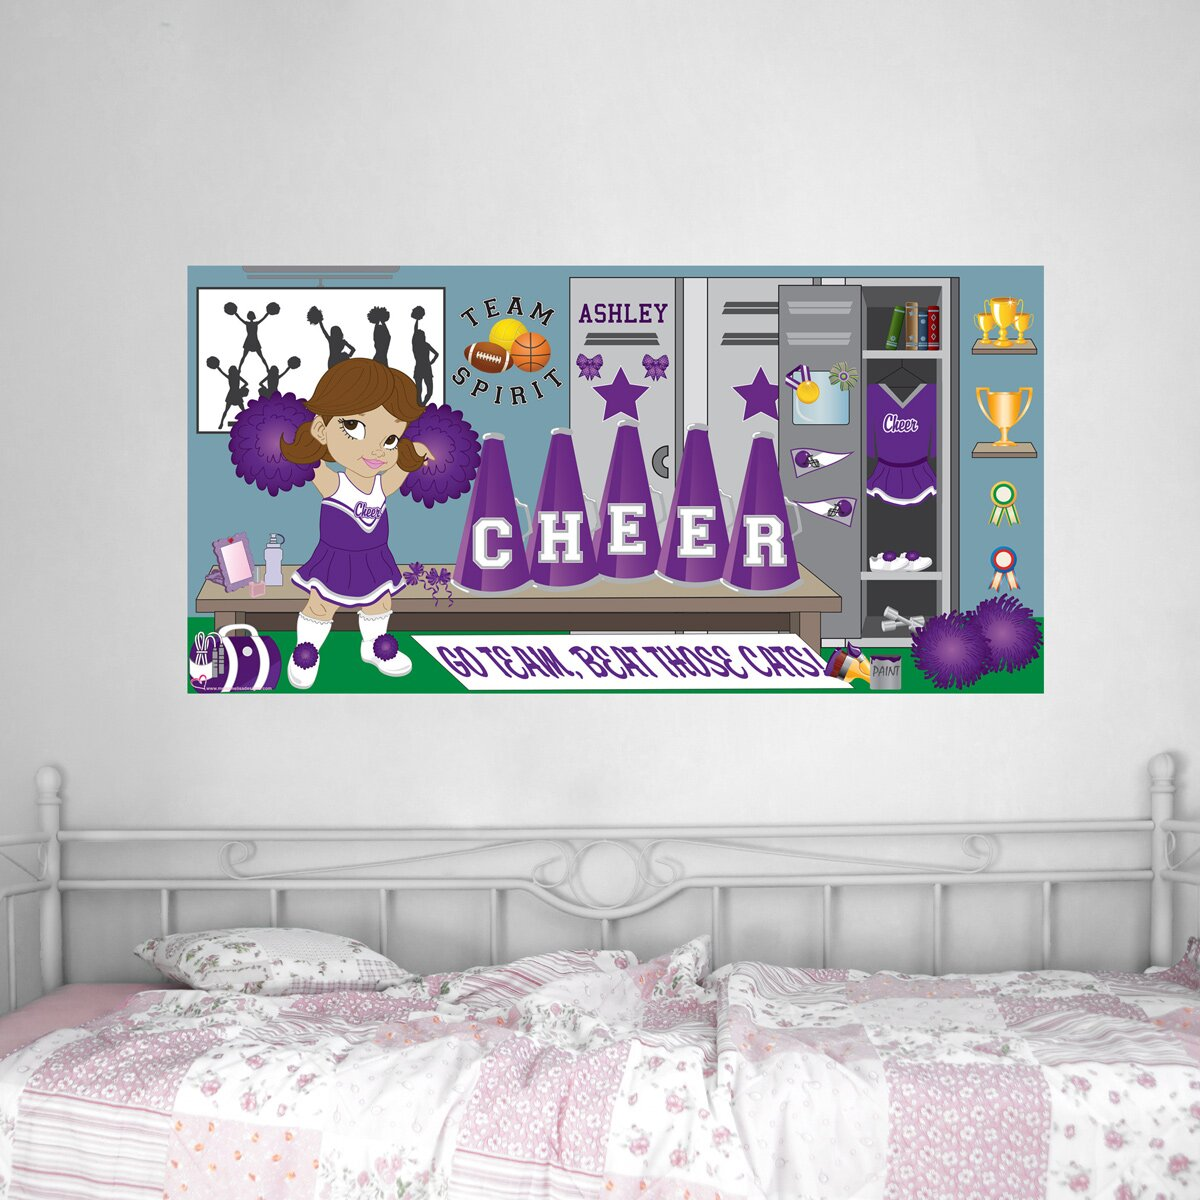 Mona melisa designs cheerleader hanging wall mural for Cheerleader wall mural